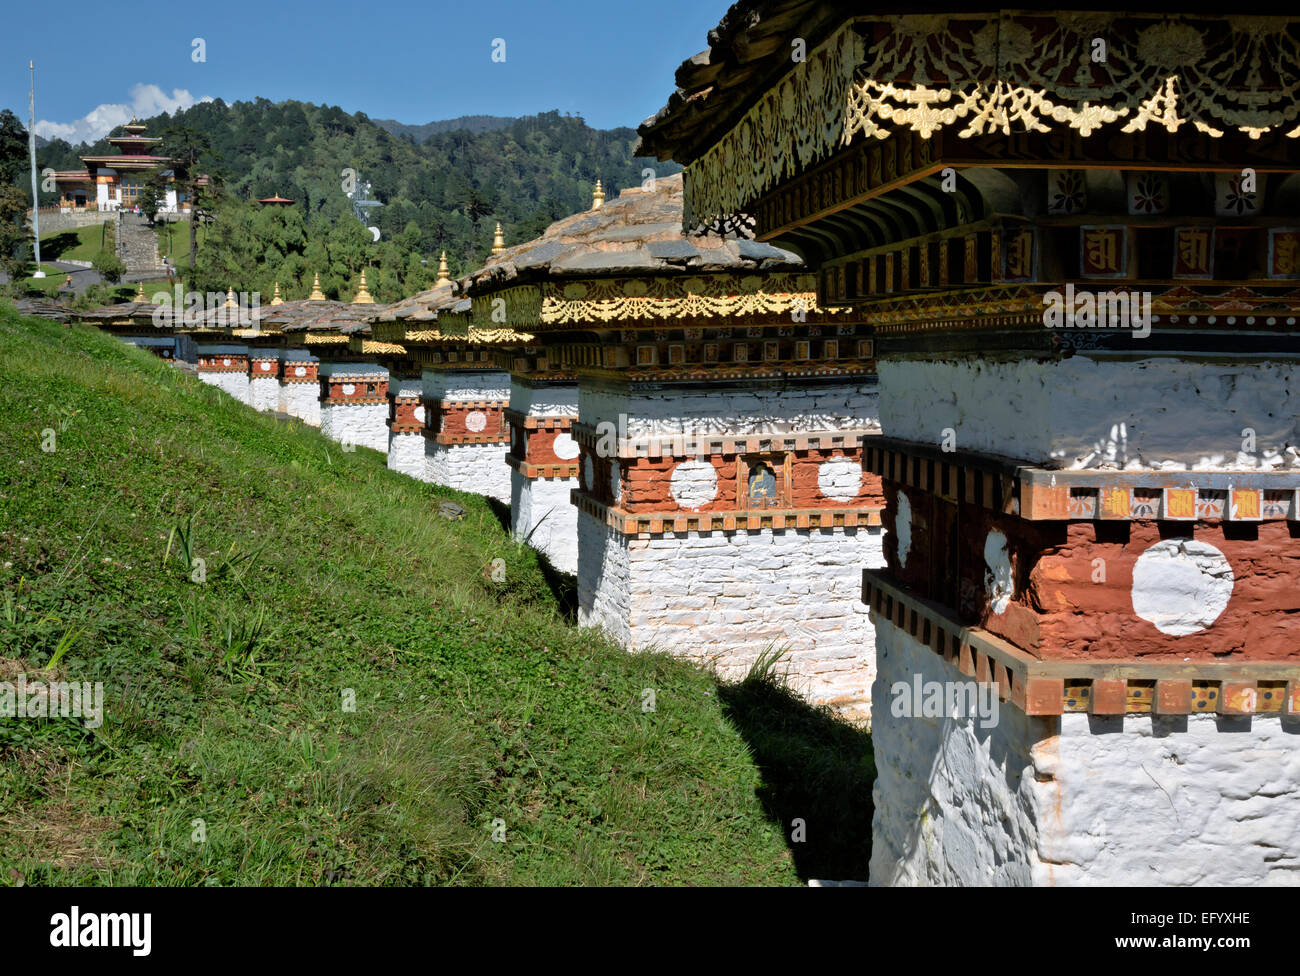 BU00098-00...BHUTAN - Some of the 108 chortens and the Druk Wangyal Lhakhang from Dochu La (pass). - Stock Image